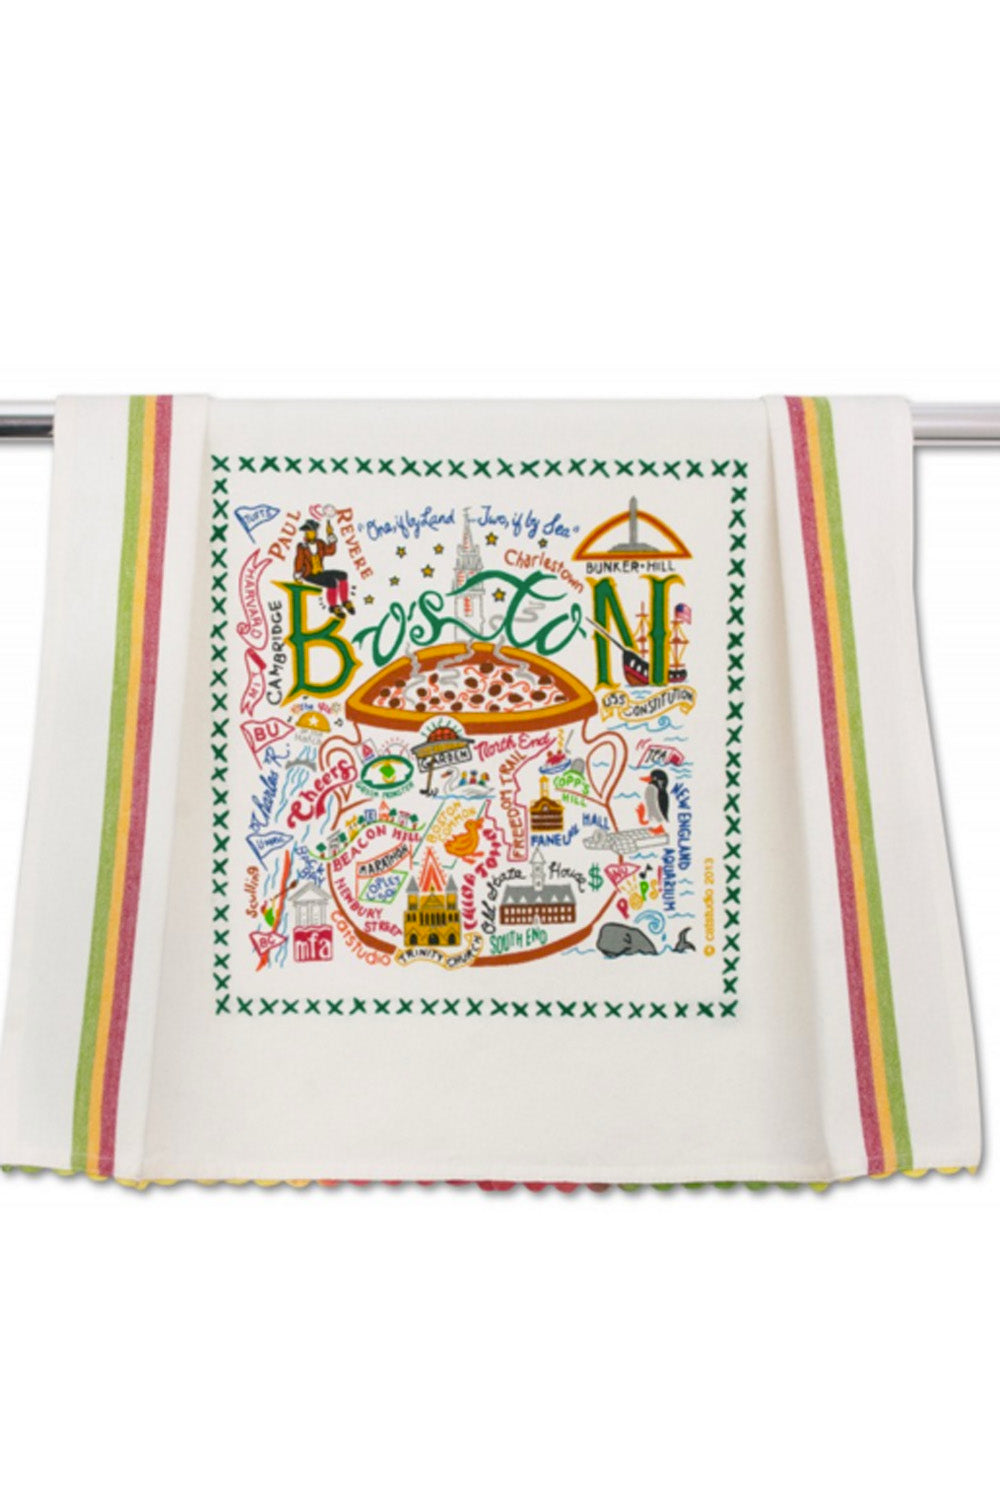 Embroidered Dish Towel - Boston